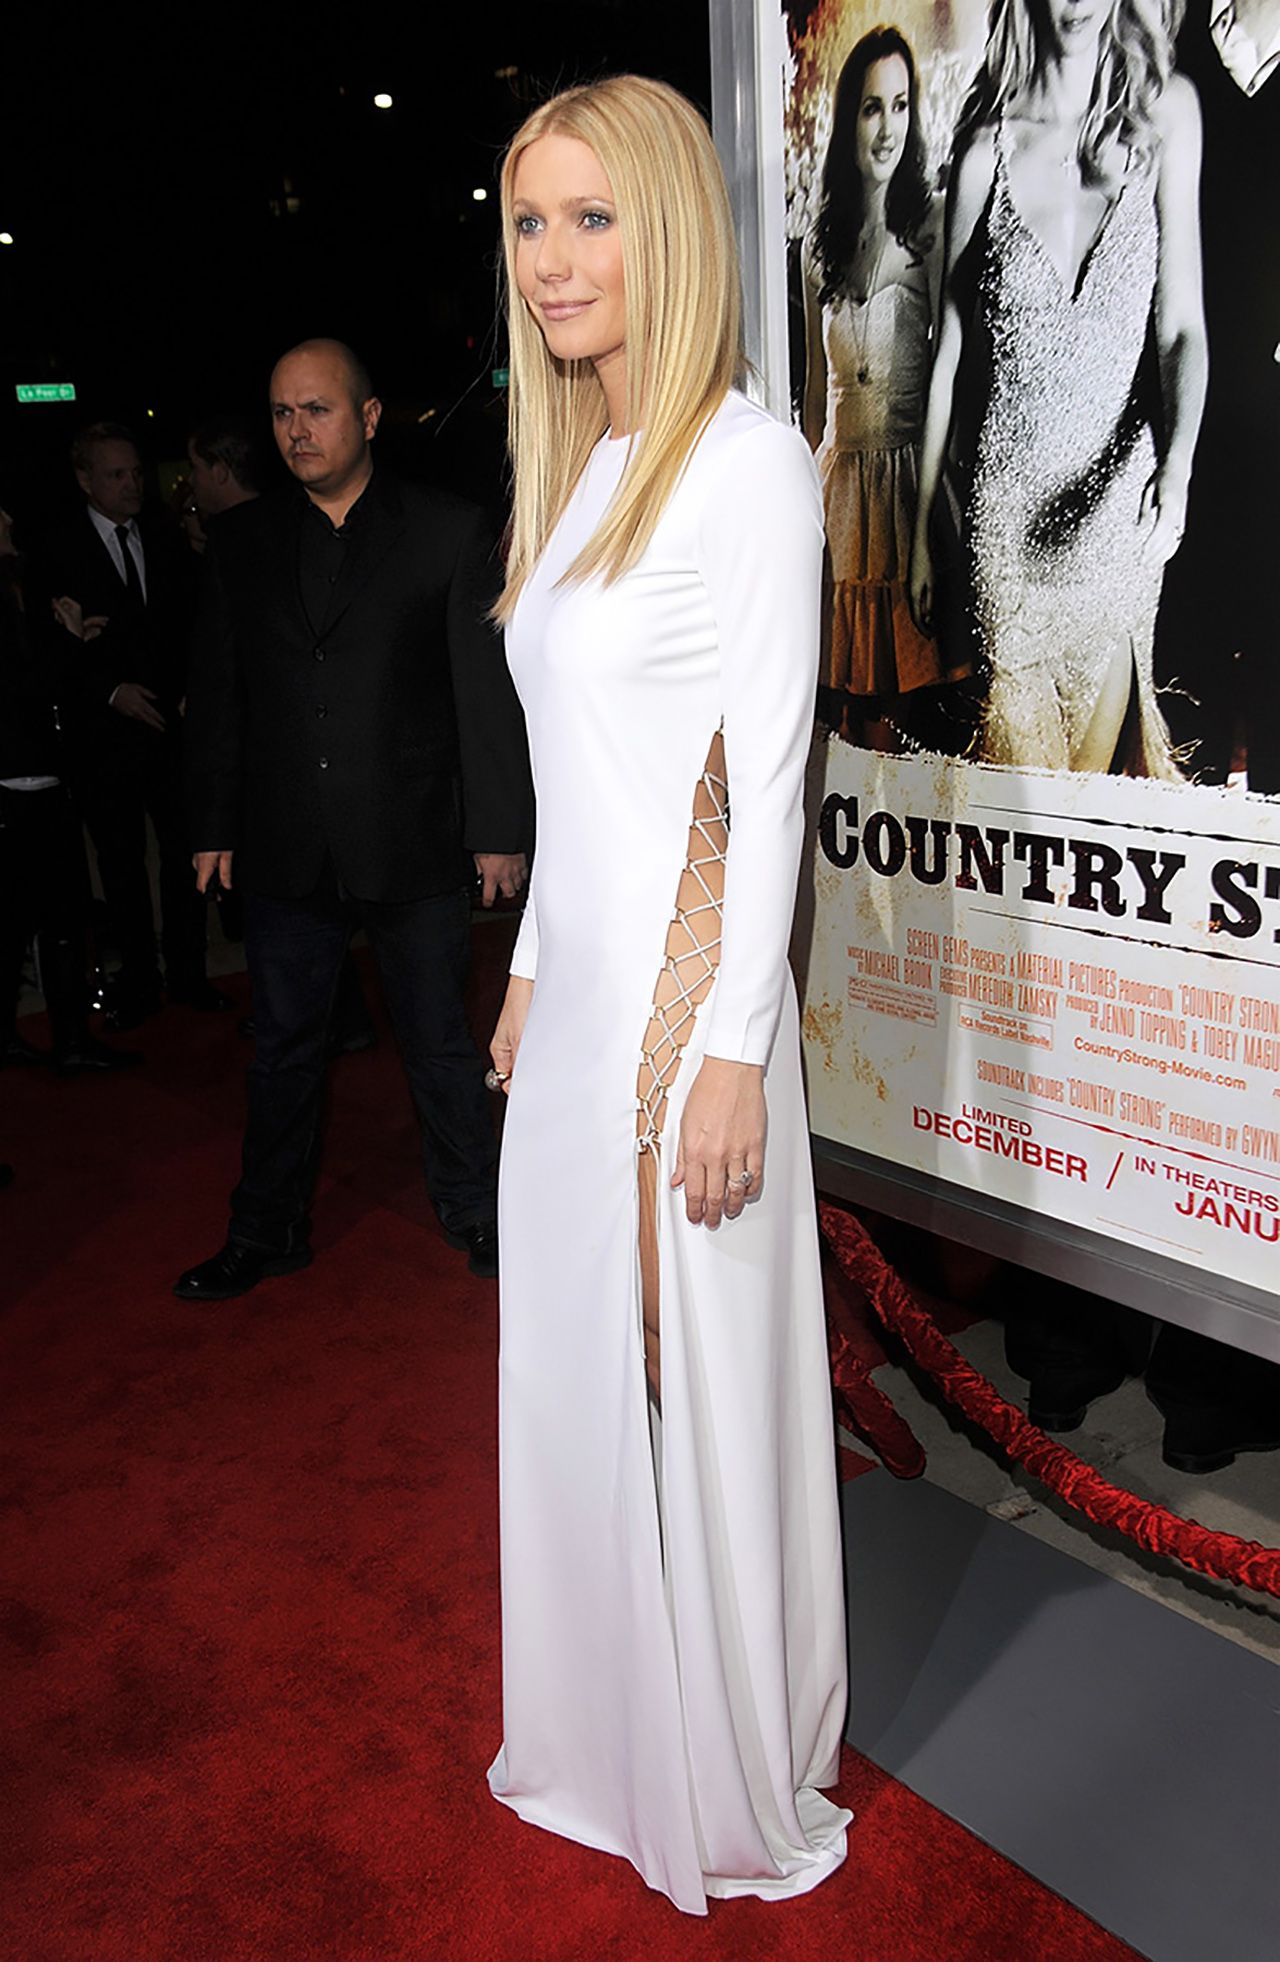 Gwyneth Paltrow In Emilio Pucci - At the Country Strong screening in Los Angeles, 2010